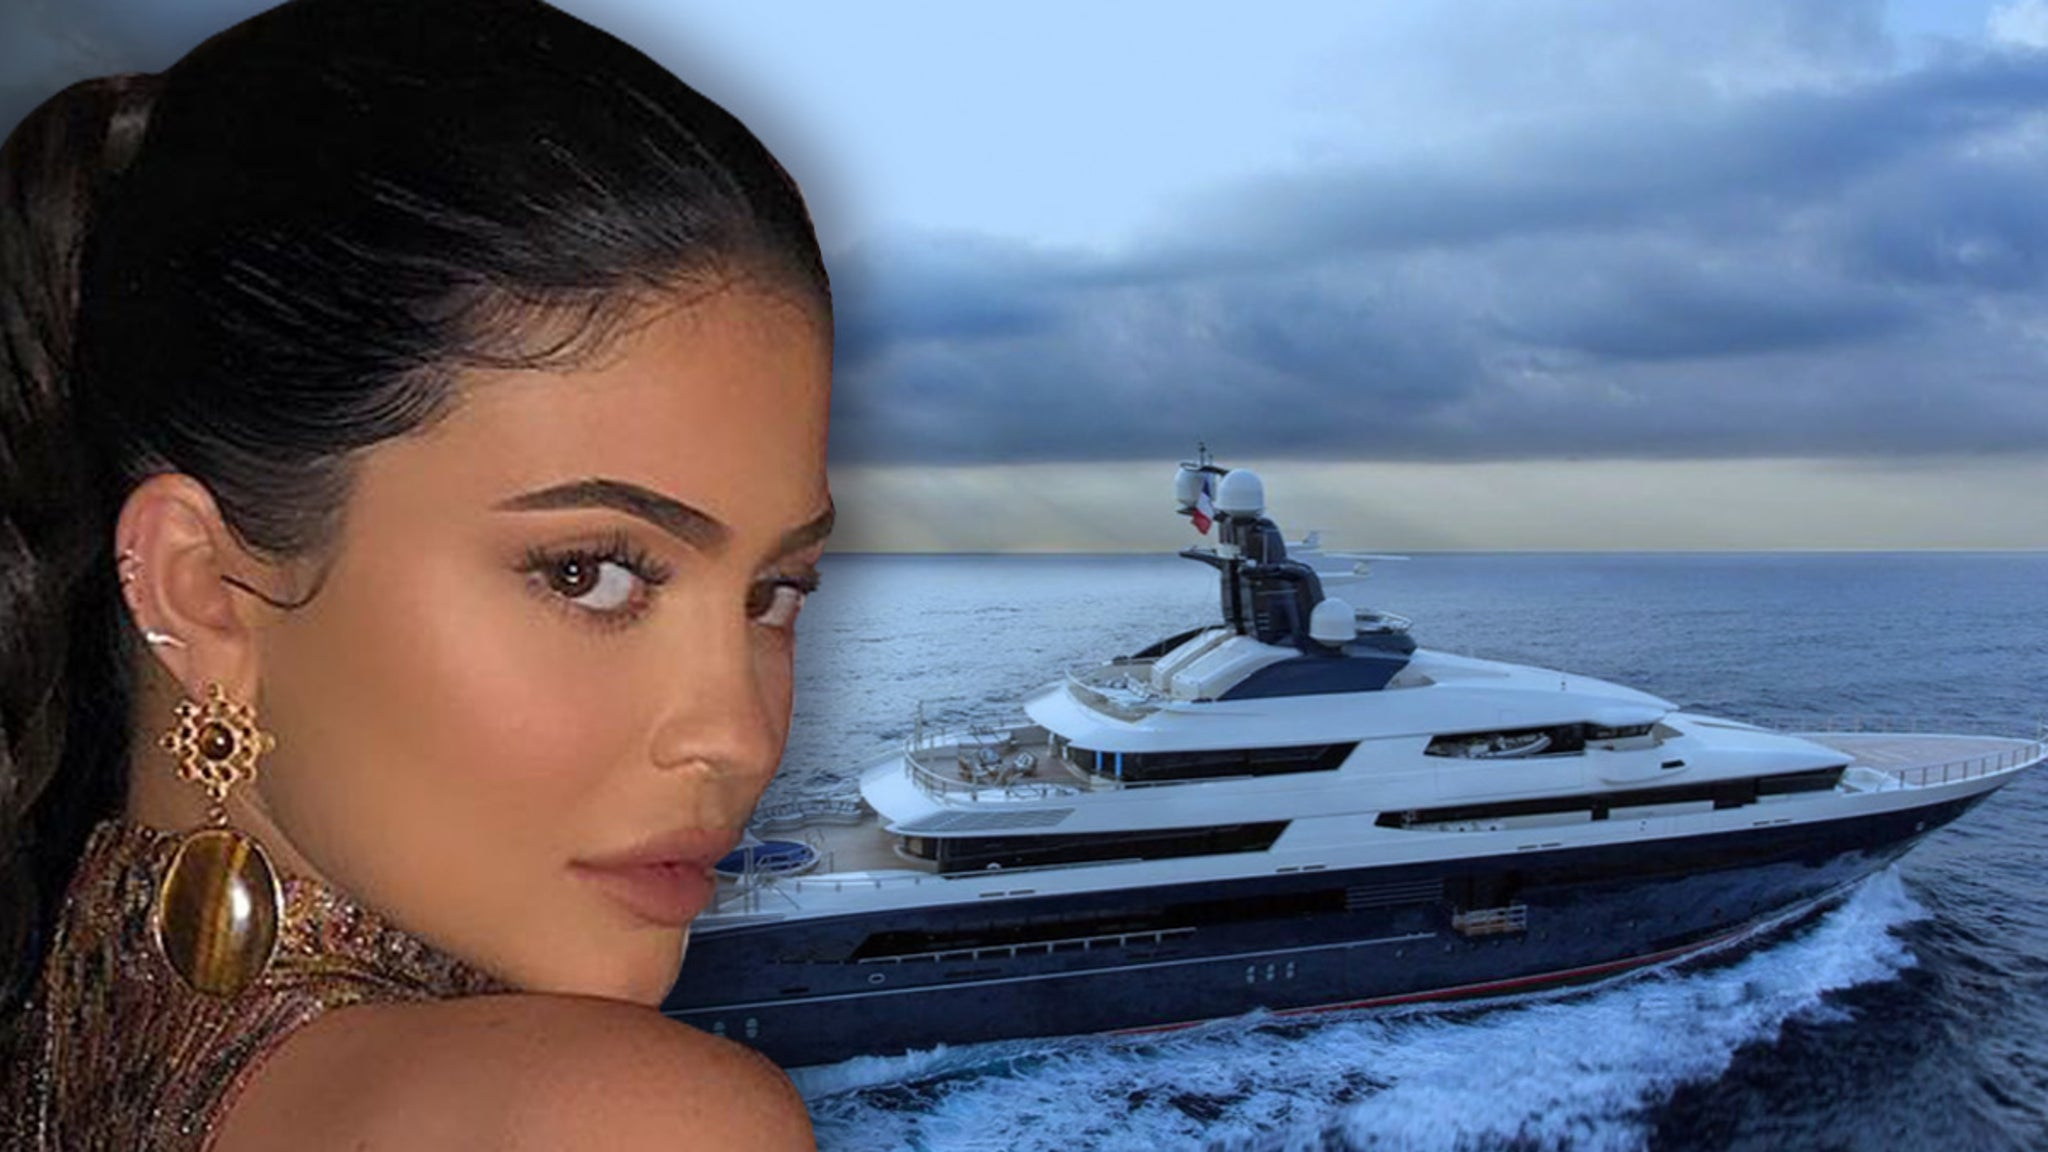 Kylie Yacht Yacht is not necessarily the best boat on the